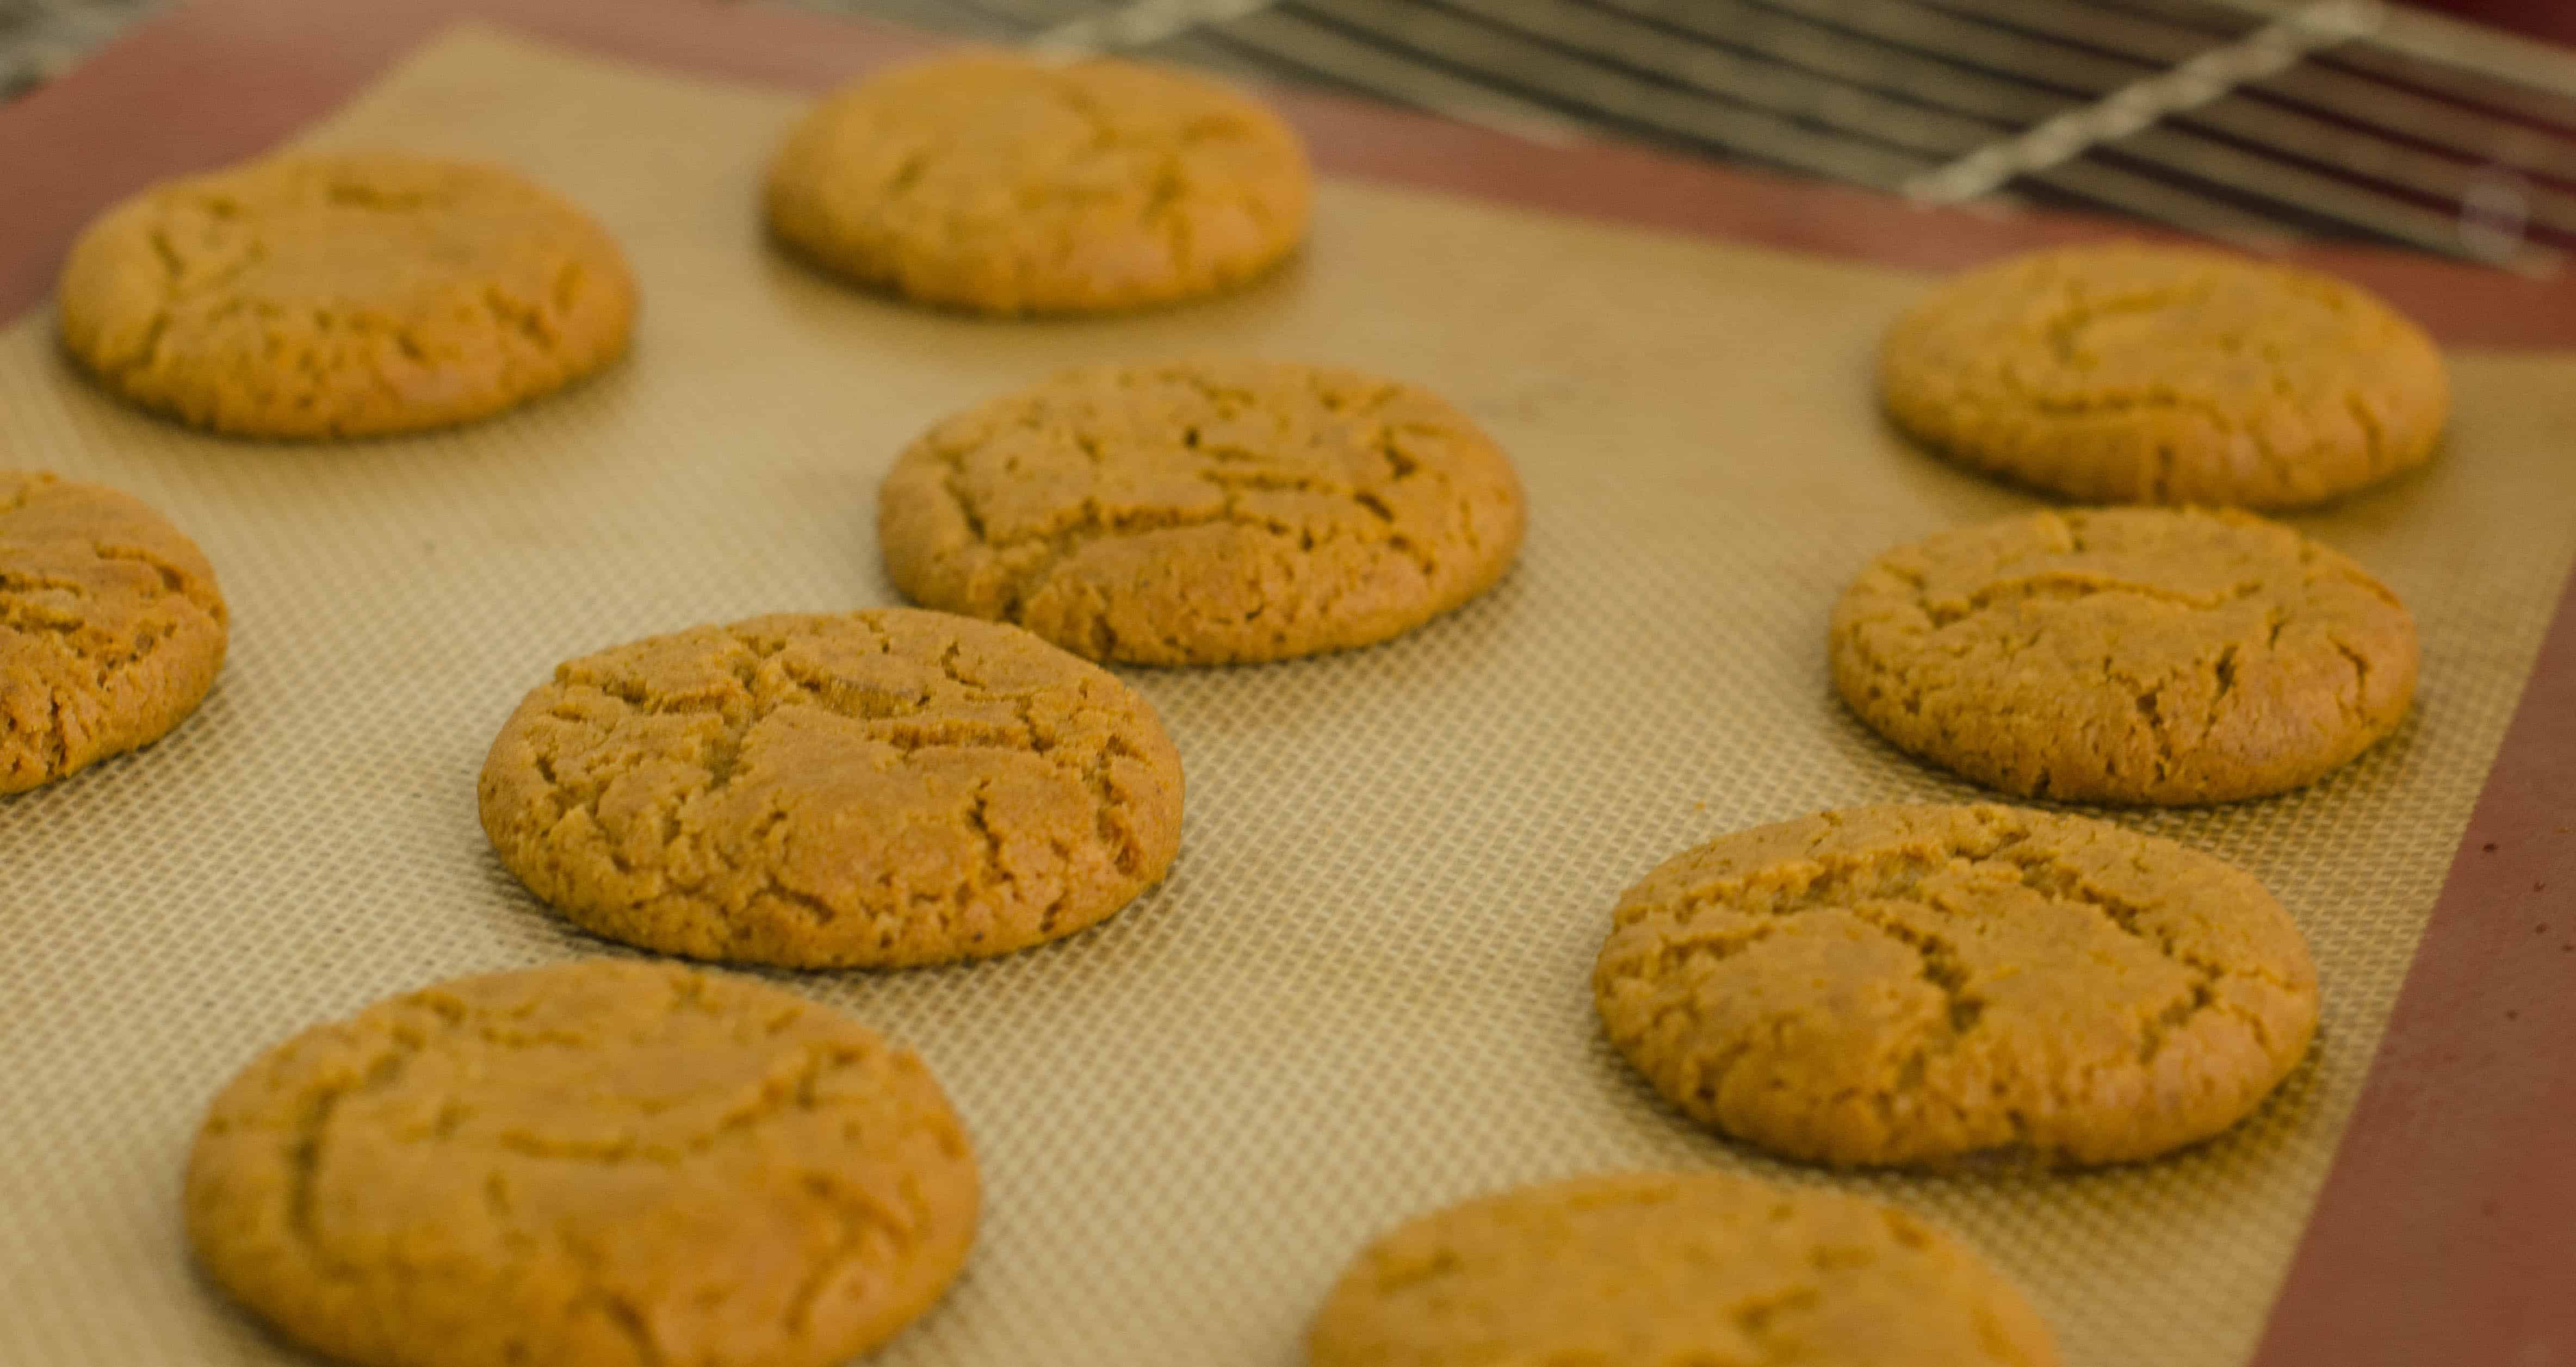 Ginger Chilli Biscuits out of oven